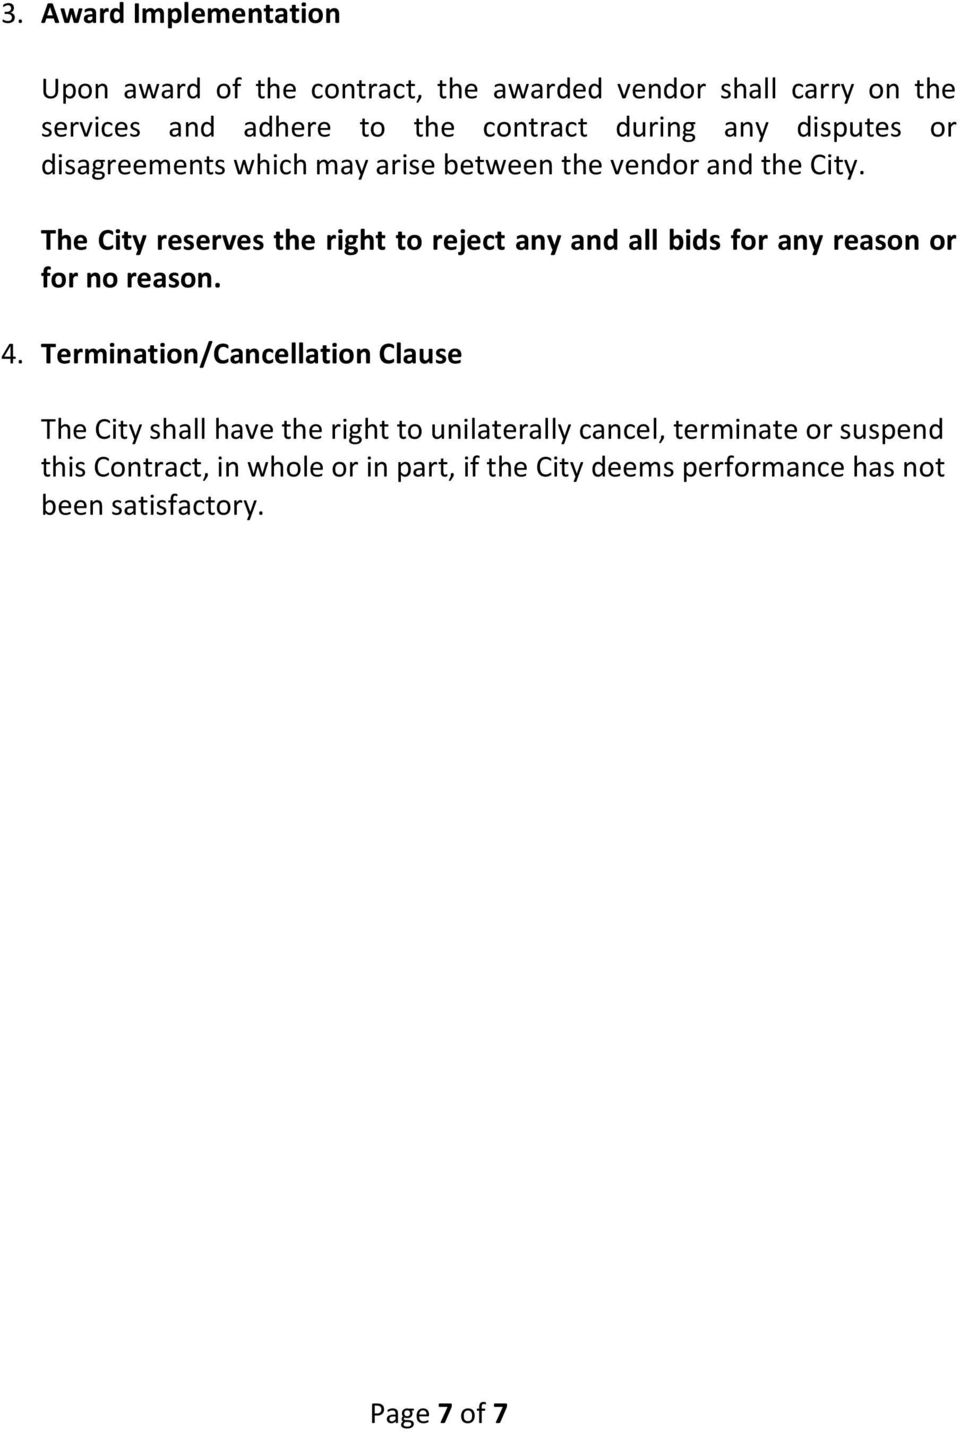 The City reserves the right to reject any and all bids for any reason or for no reason. 4.